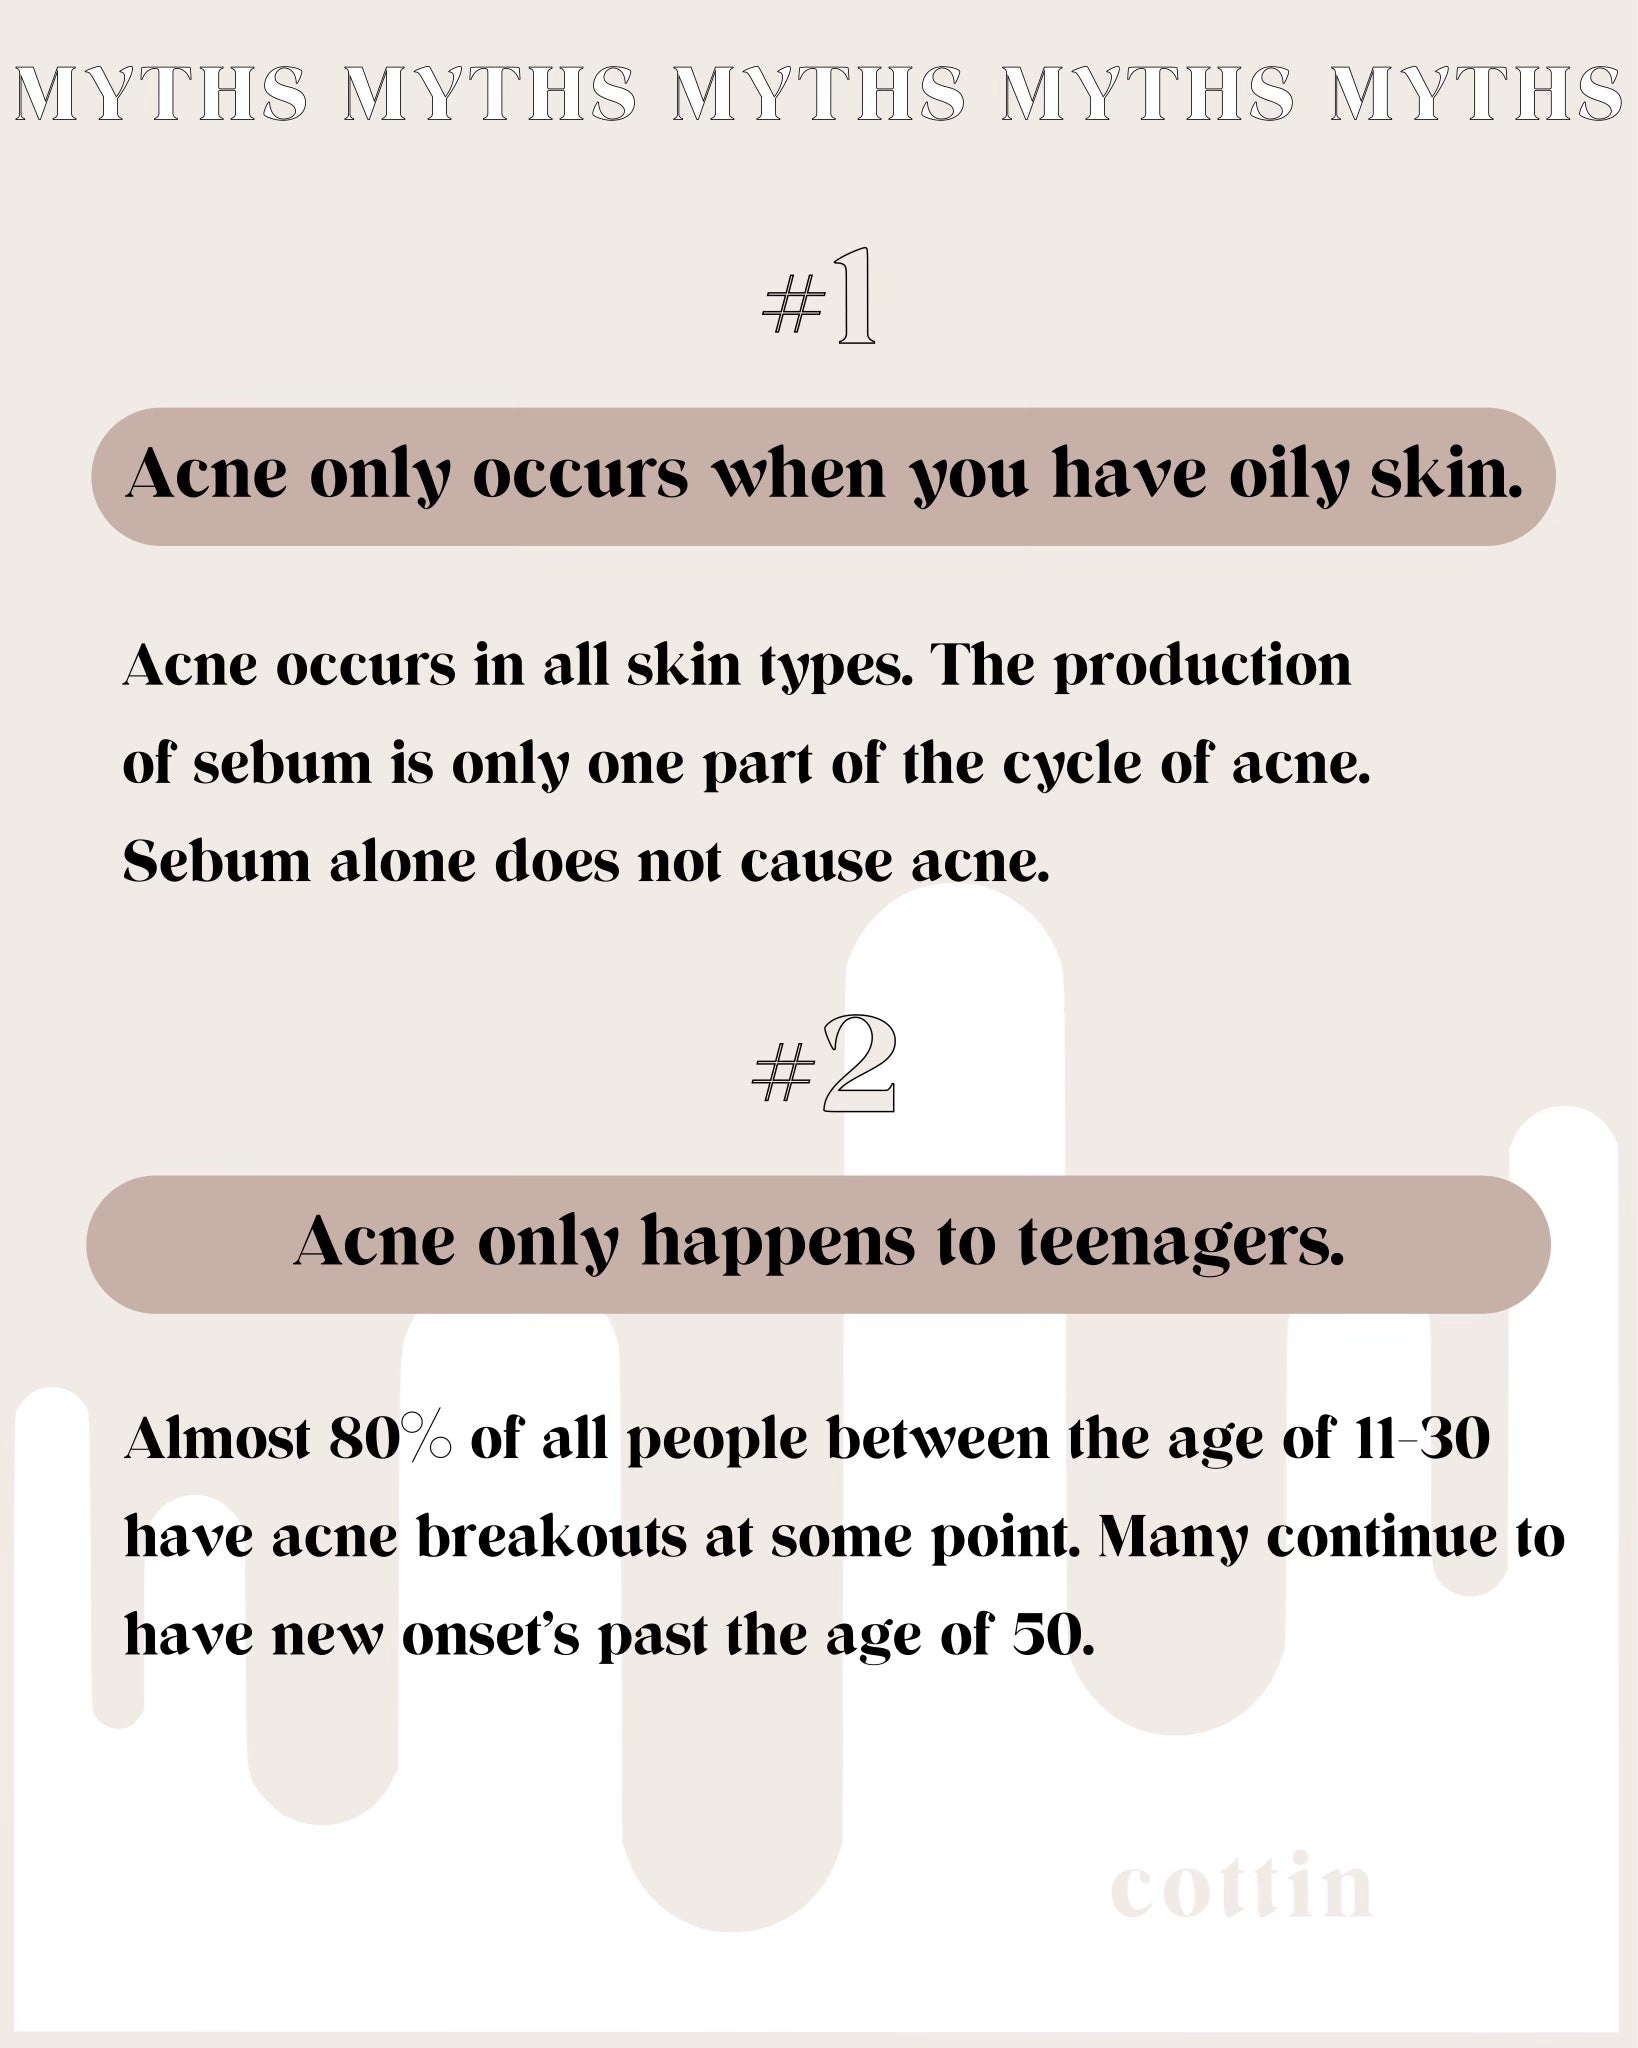 Cottin Acne myths! Let's set the record straight on some of the most common myths around the internet.